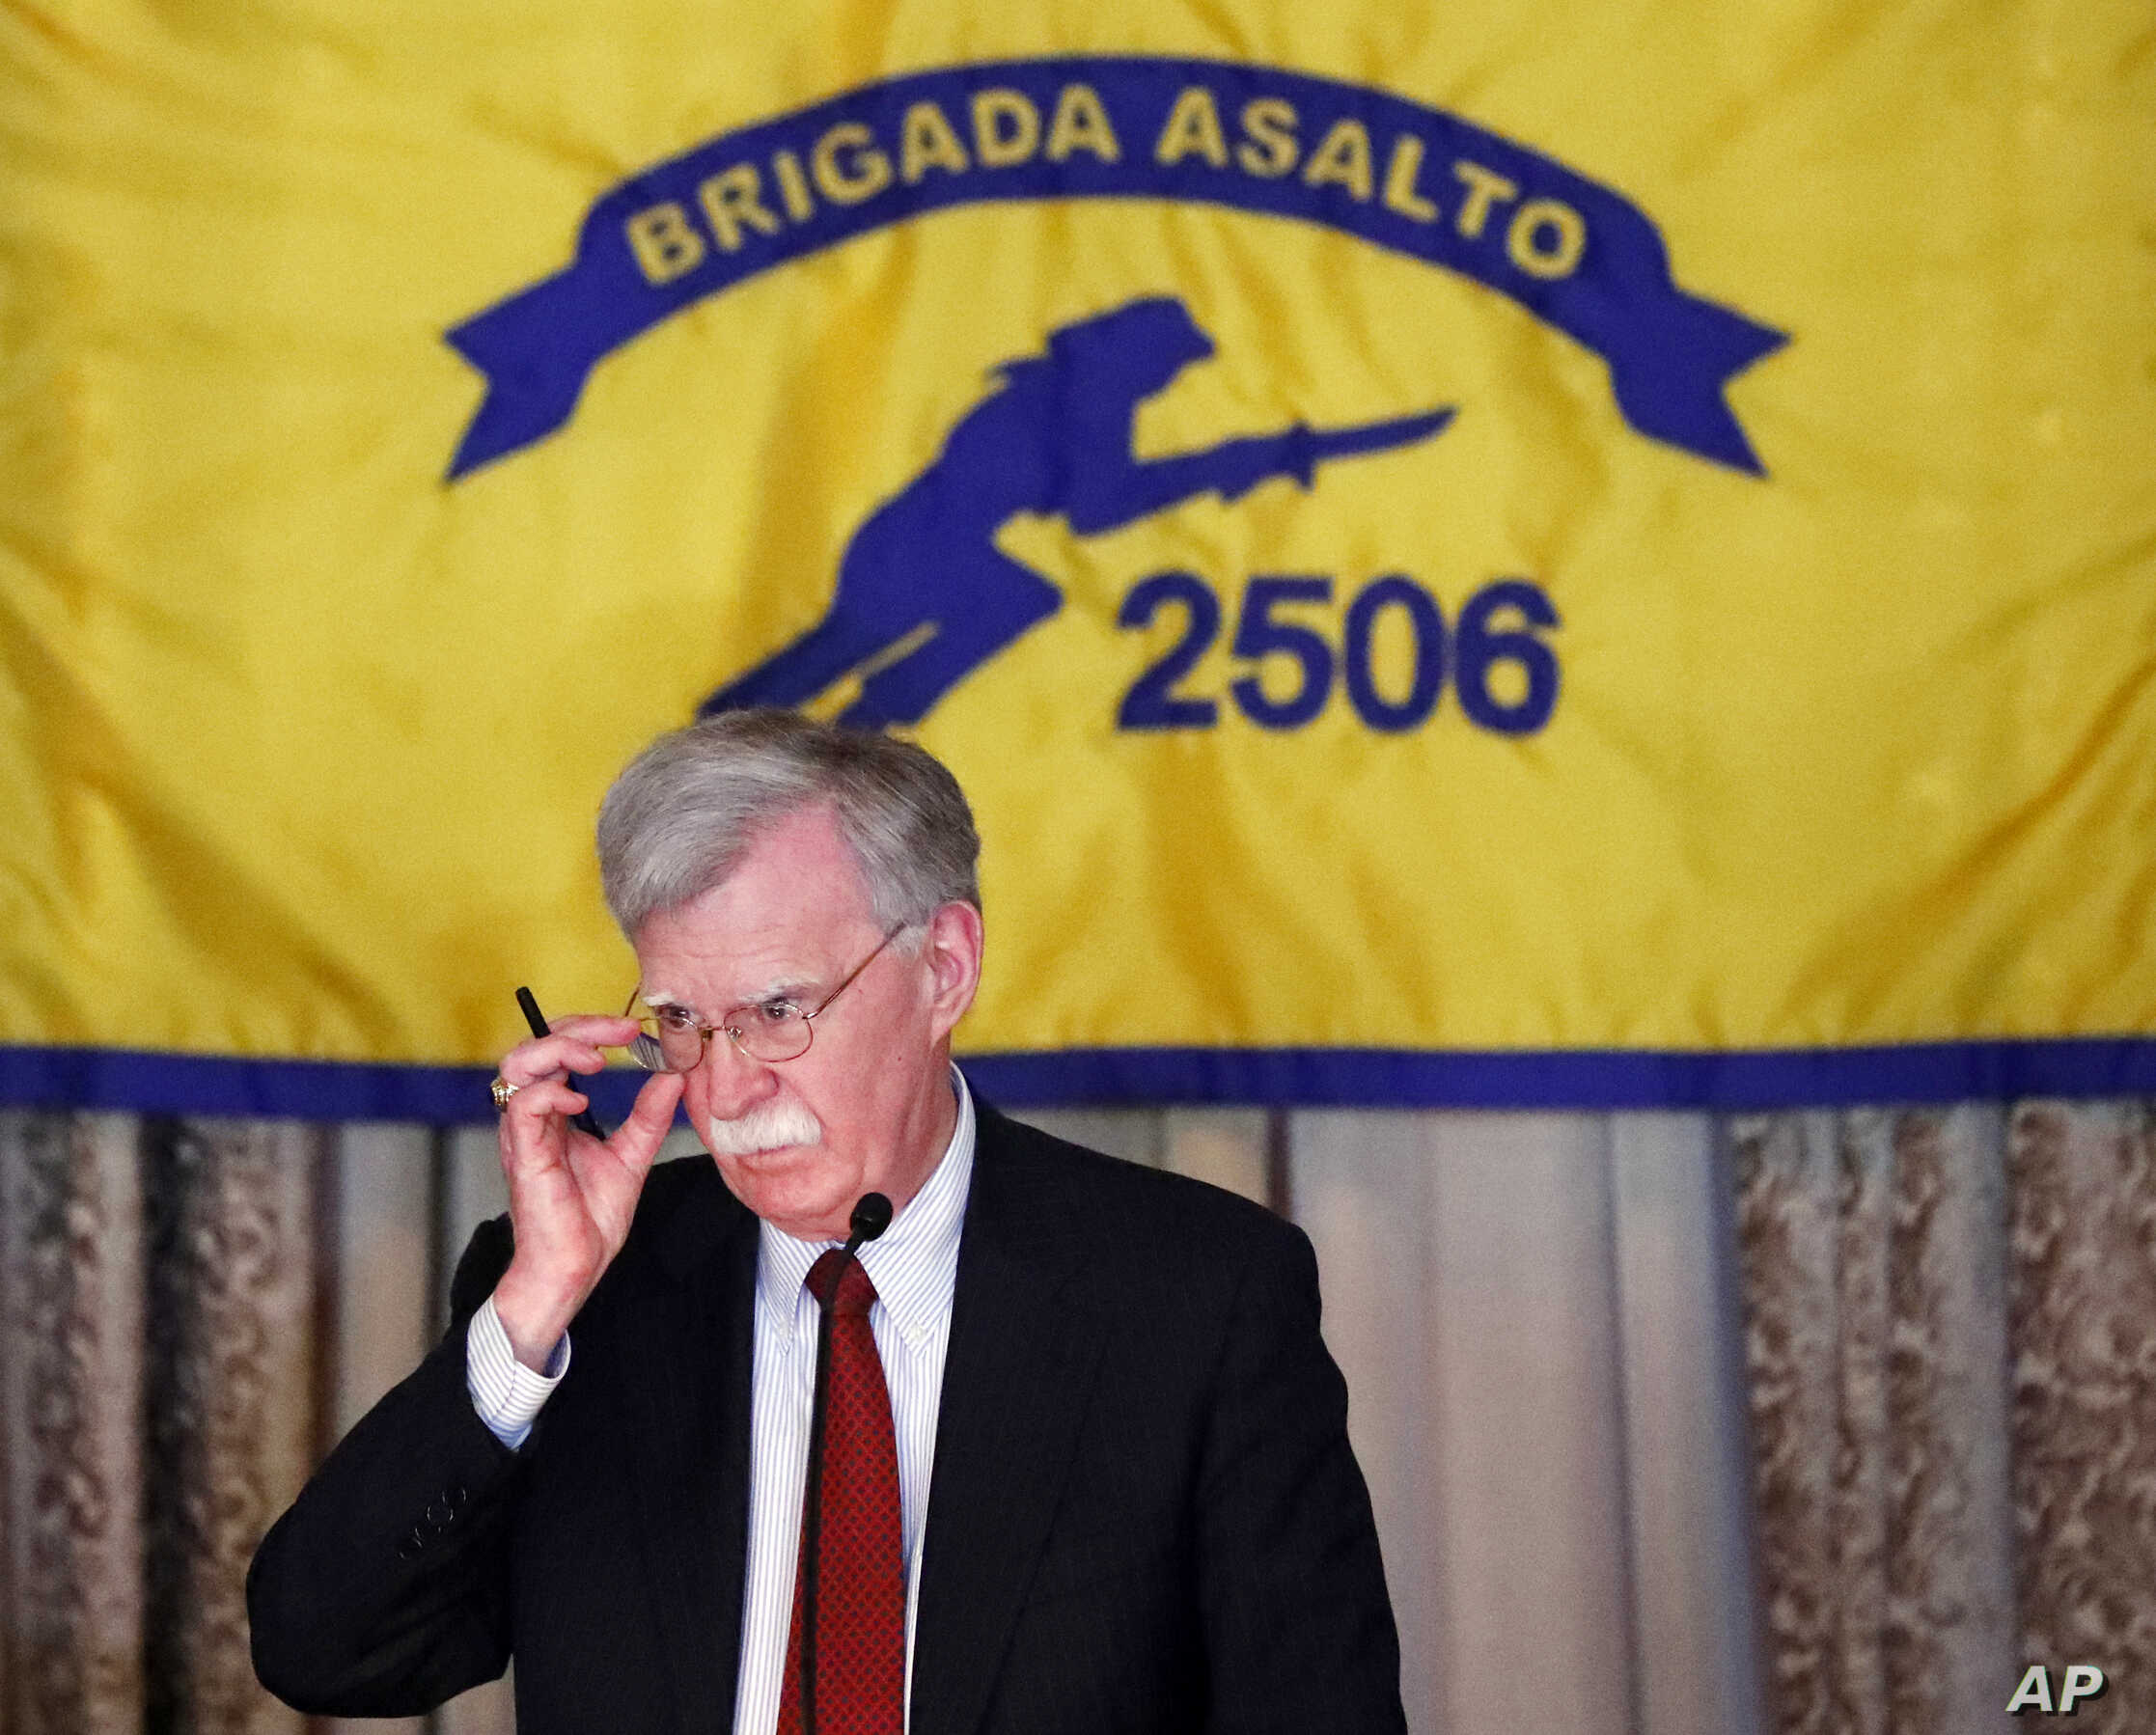 National Security Adviser John Bolton gestures while discussing new administration policy during a speech April 17, 2019, in Coral Gables, Fla., at the Bay of Pigs Veterans Association on the 58th anniversary of the United States' failed 1961 invasio...